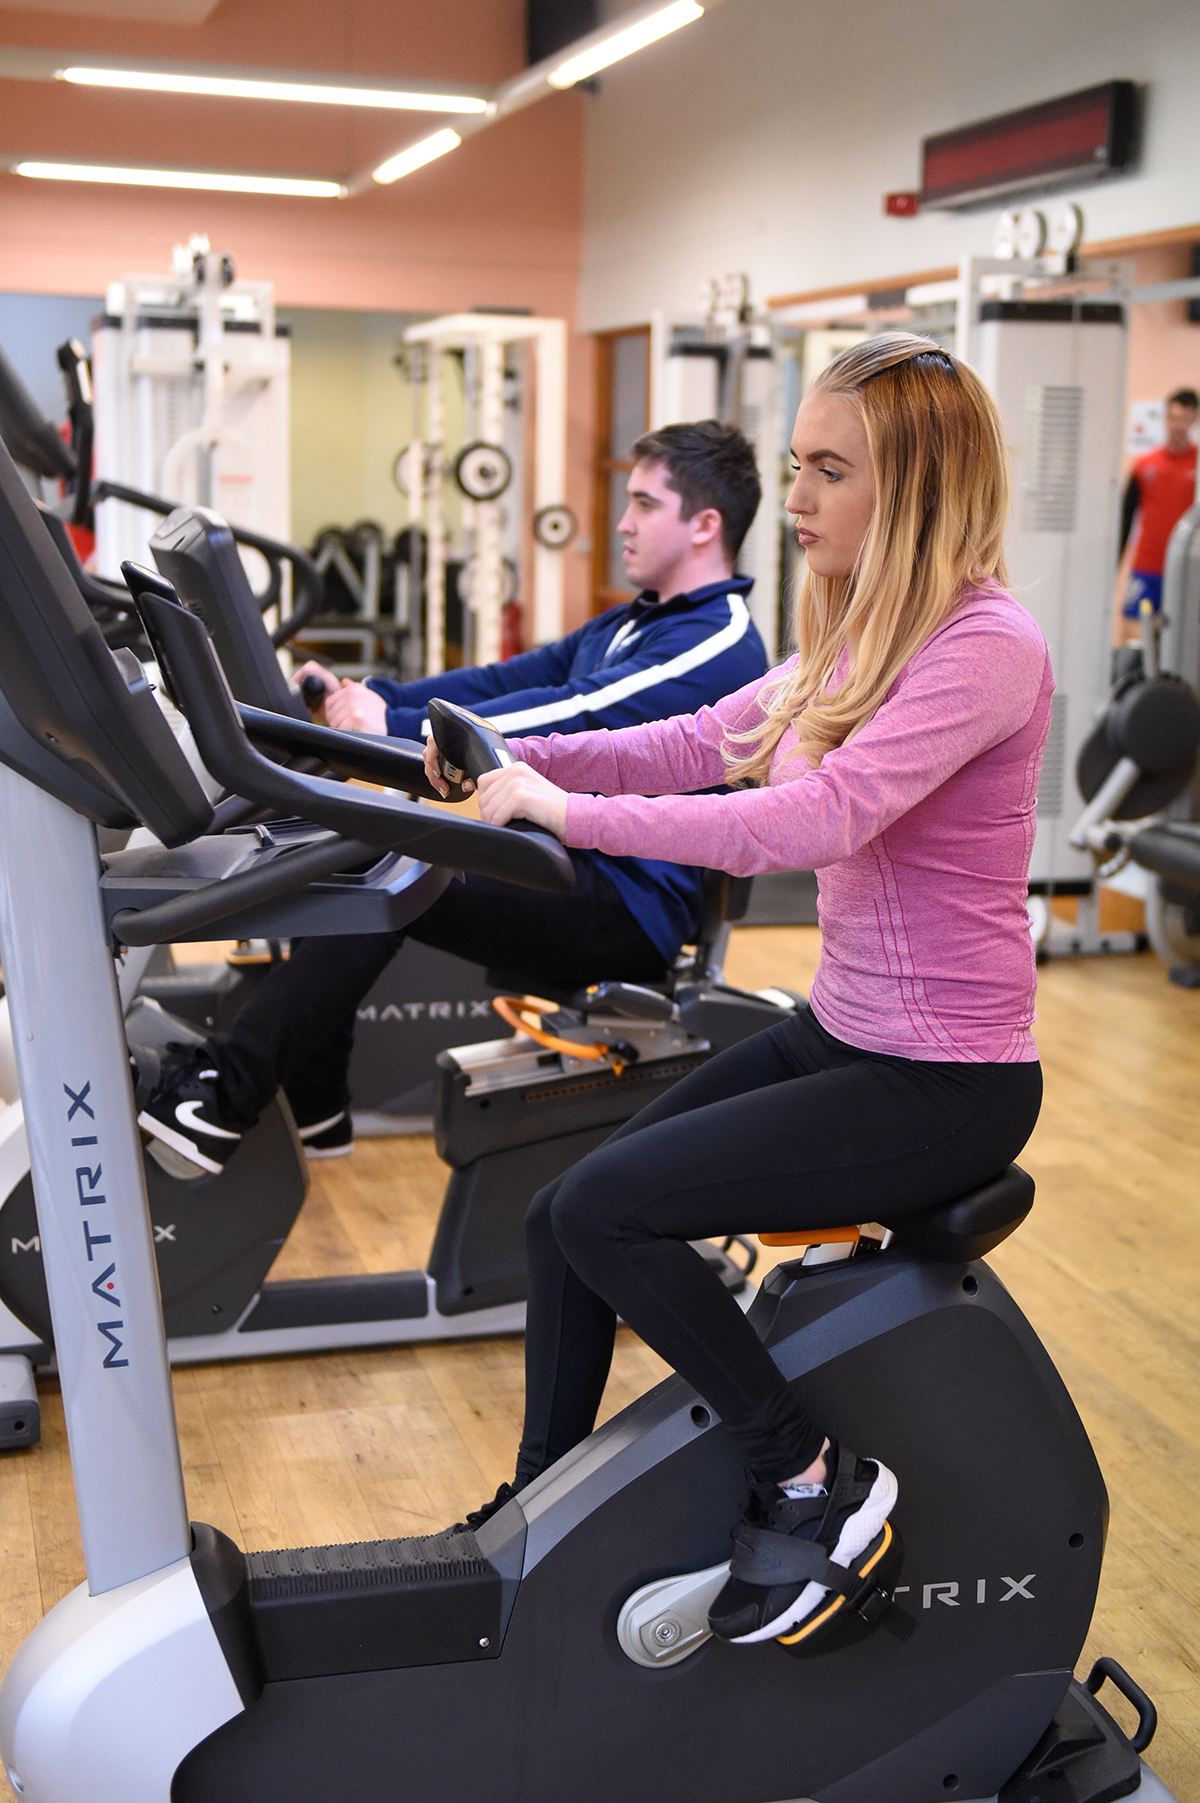 Personal training students using the gym equipment